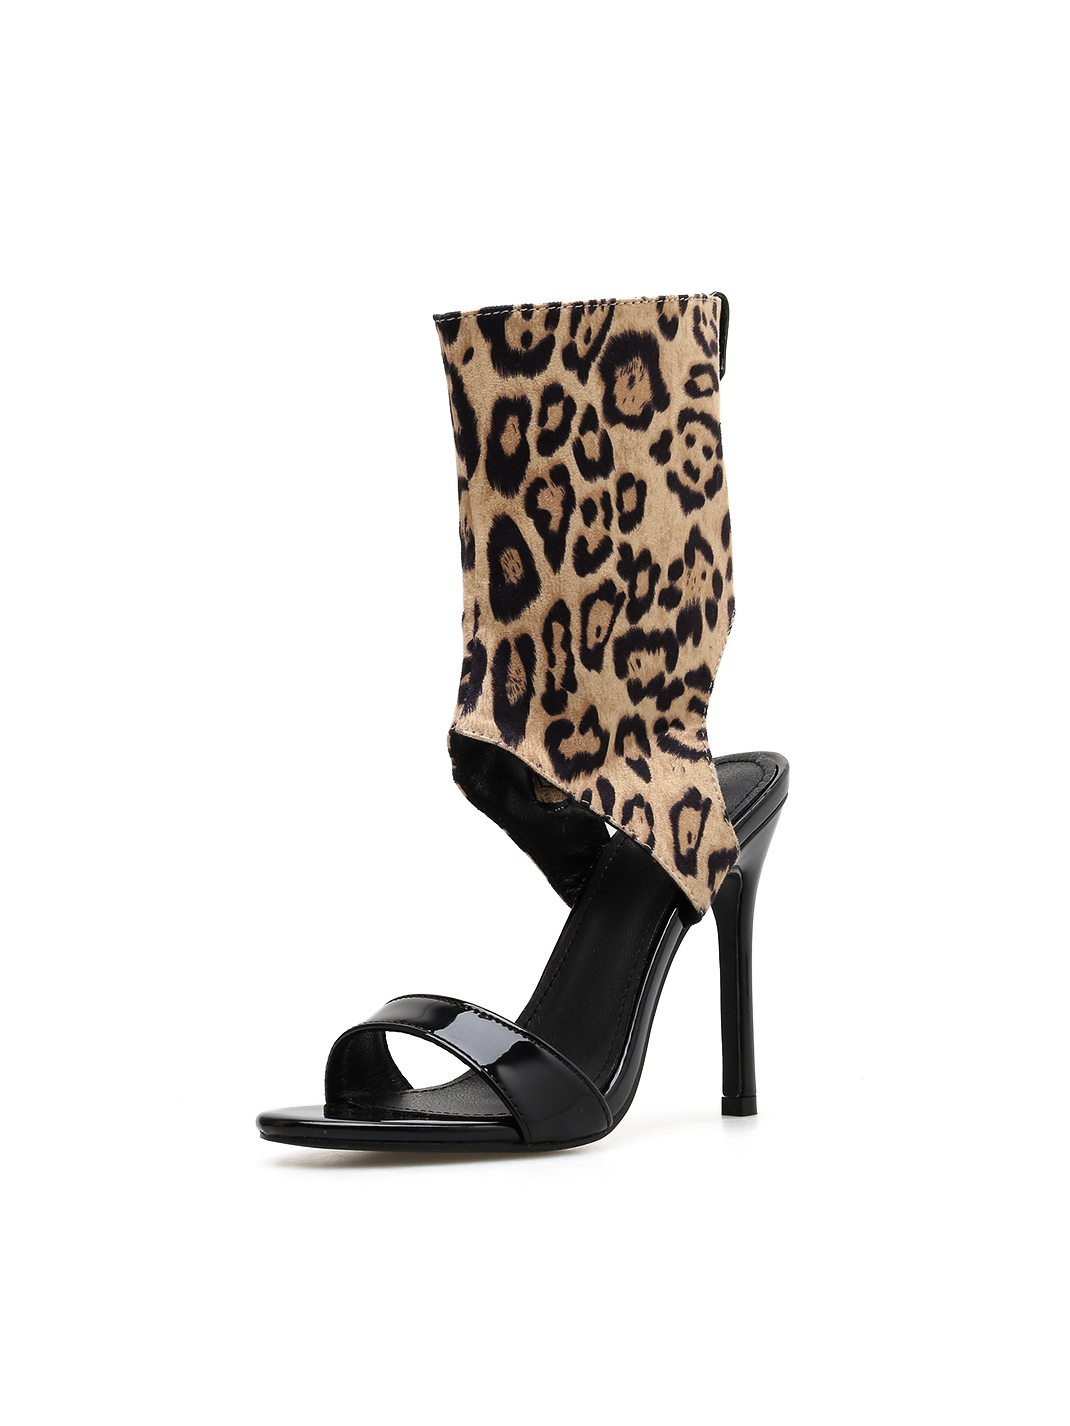 Chic Leopard Printed Over The Ankle Stiletto Sandals